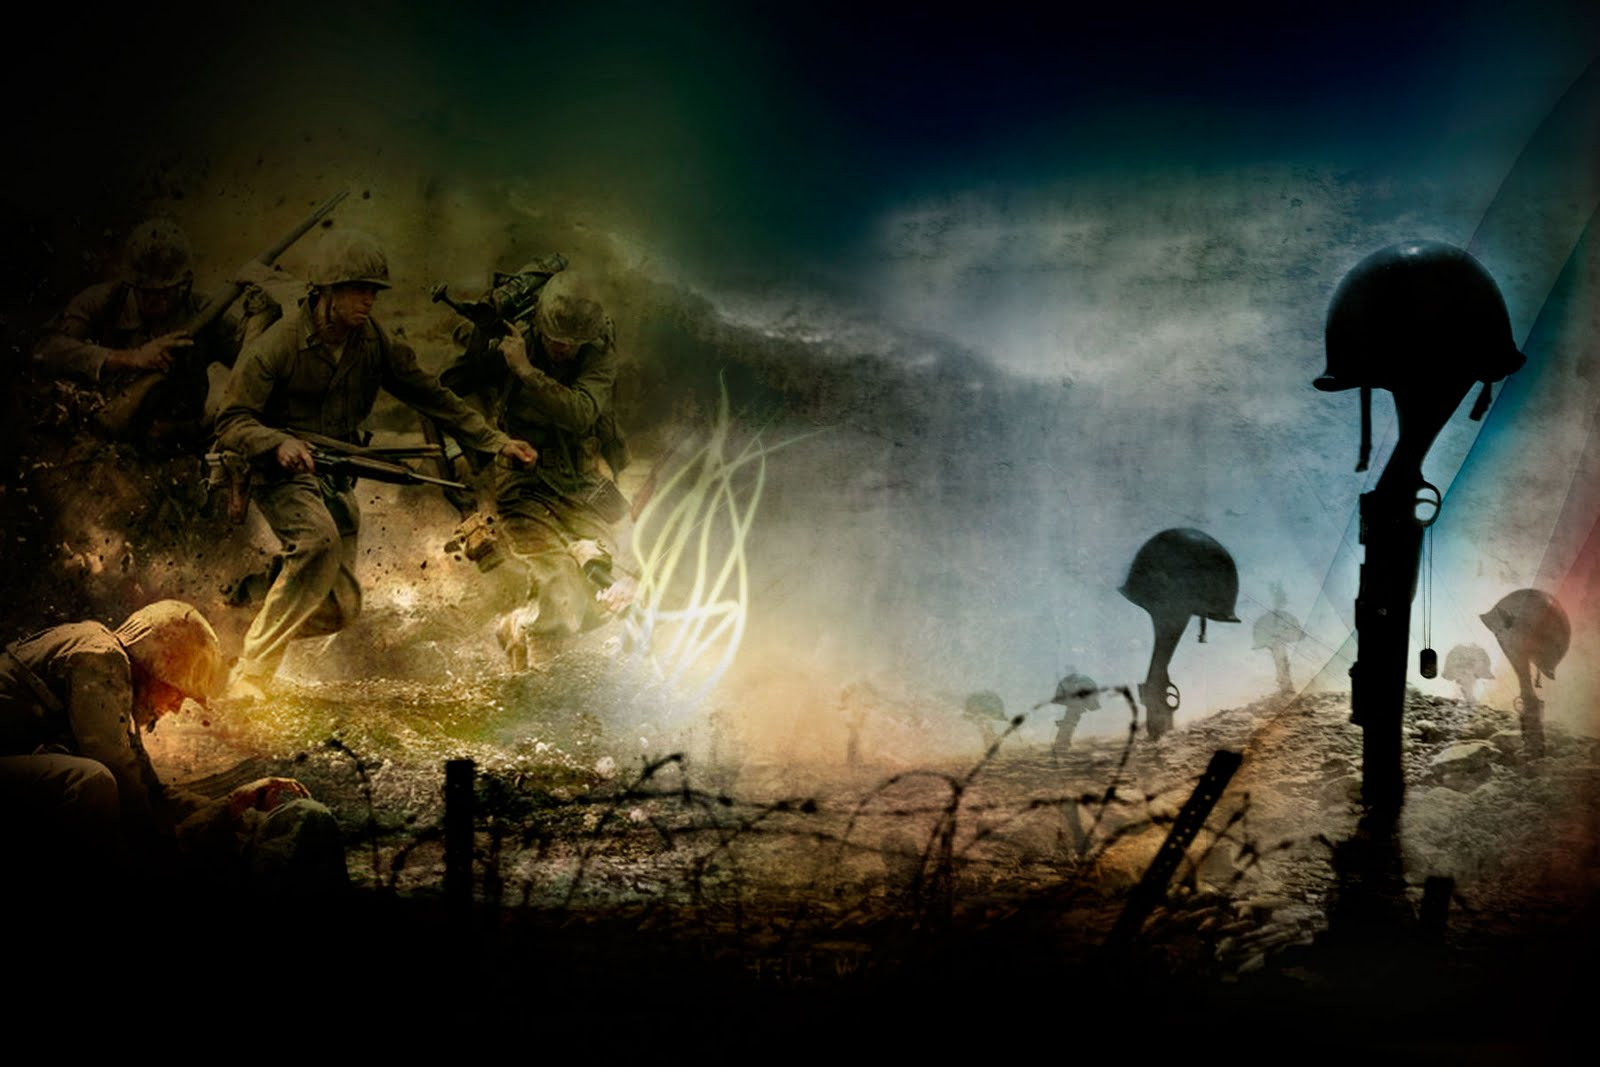 world war 2 wallpapers part 2 world war 2 wallpapers click to enlarge ...